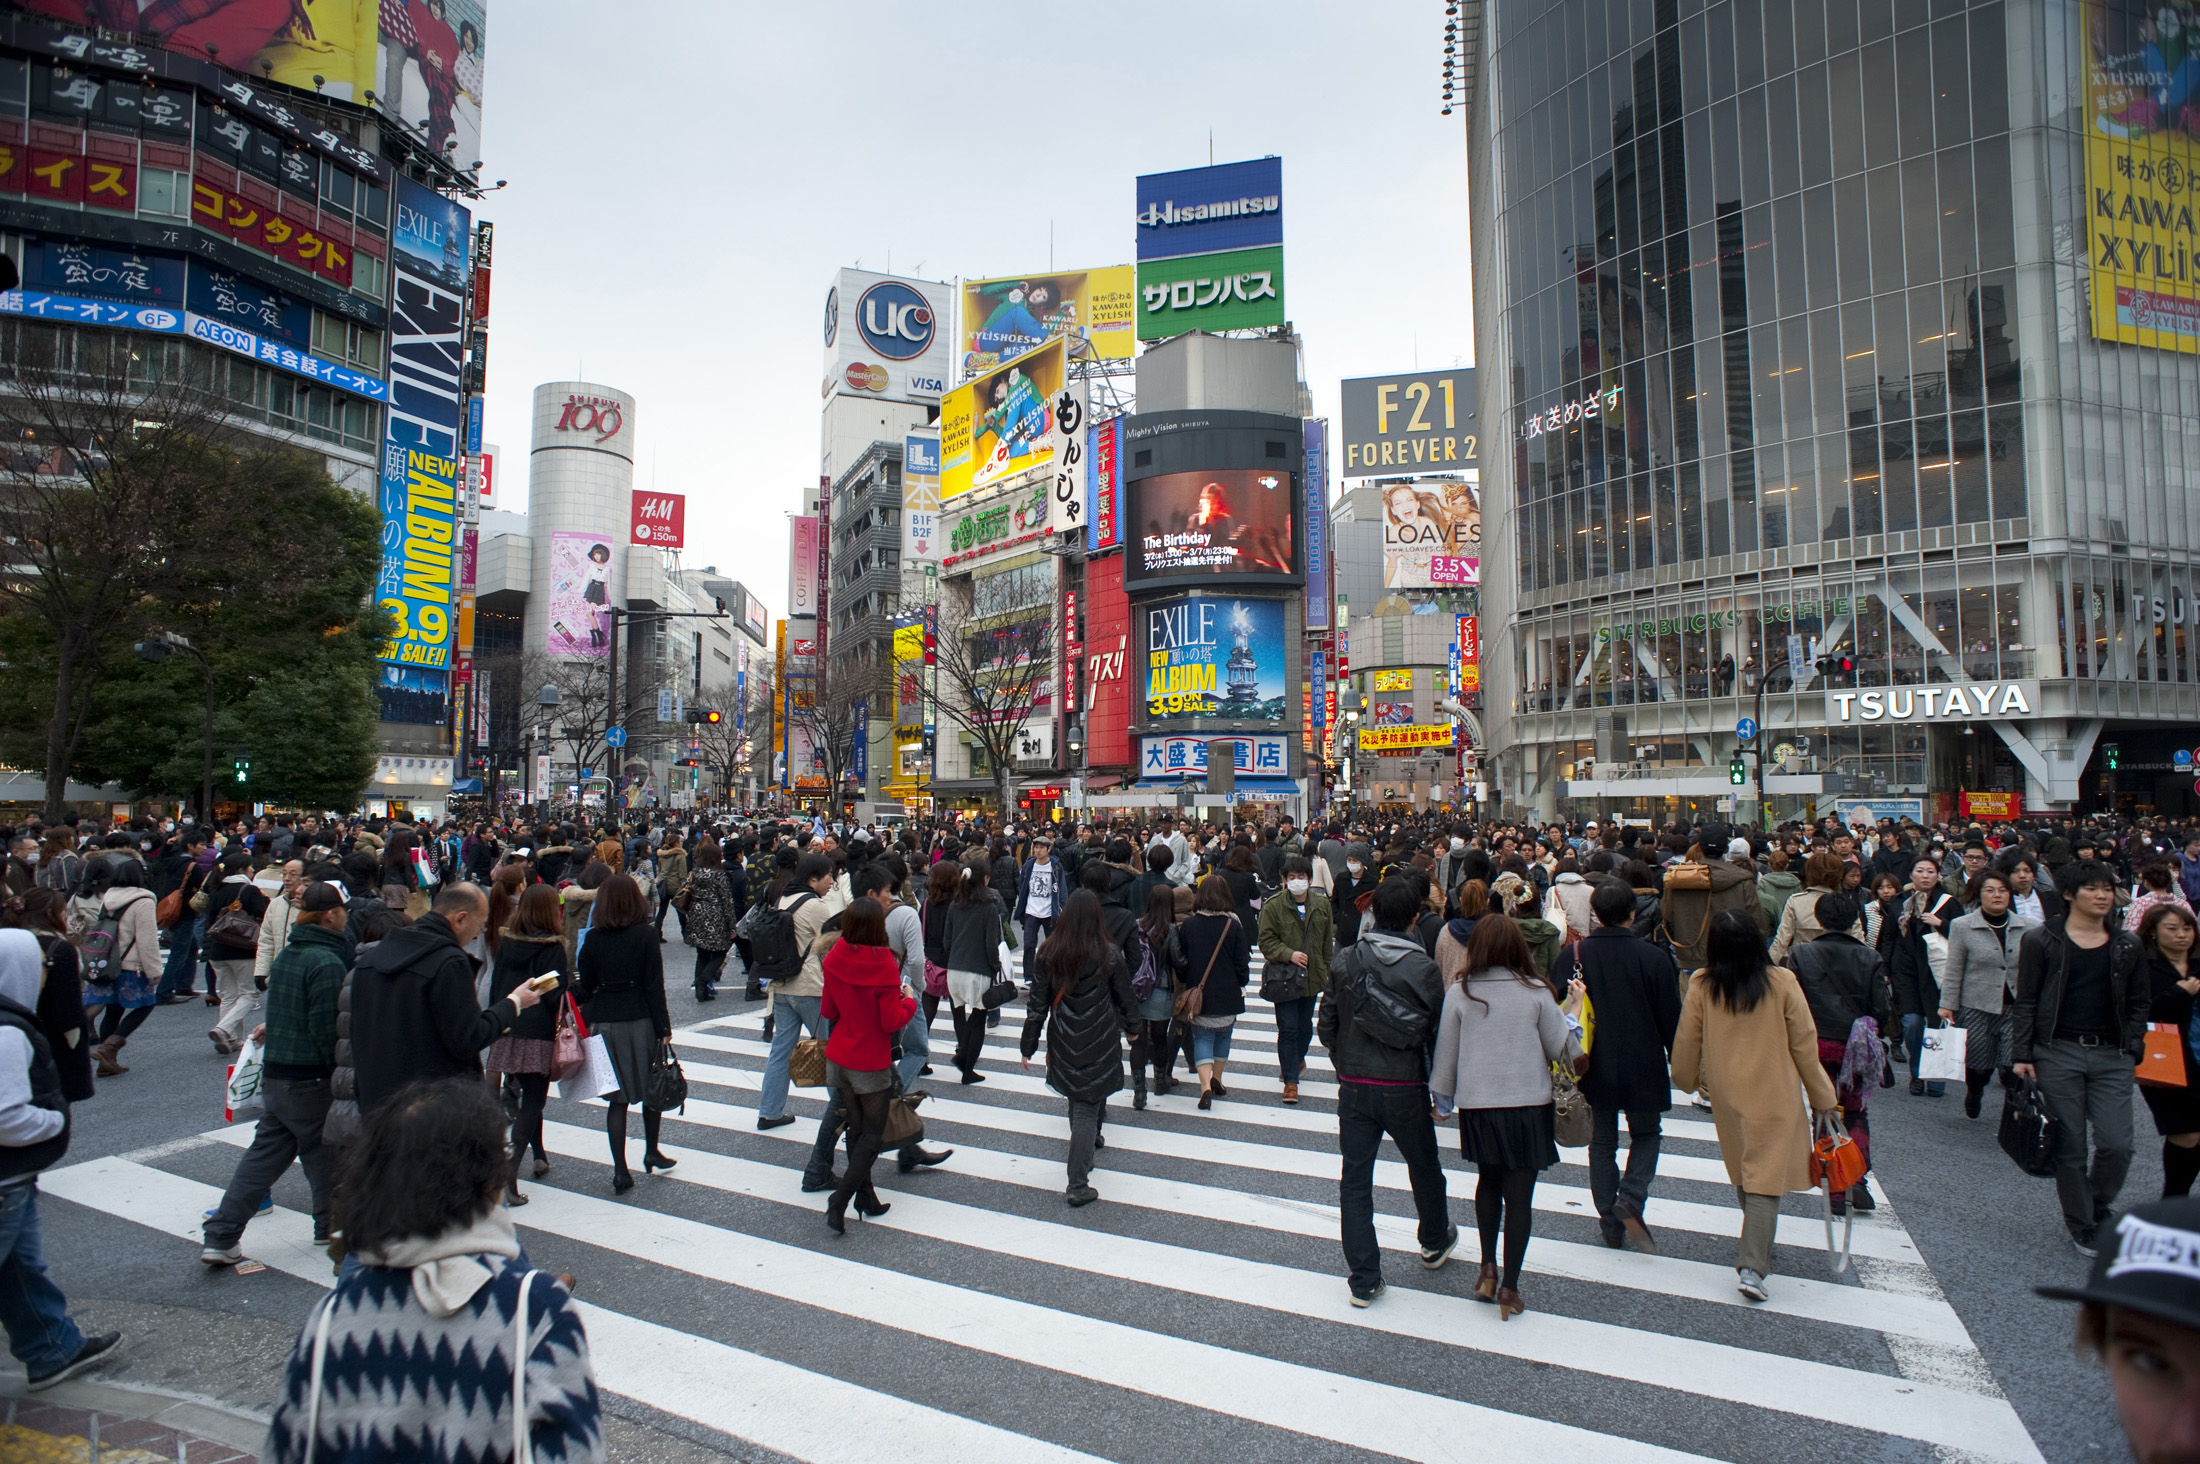 flashy advertisings and crowded streets are a feature of the shopping district in shibuya, tokyo, japan